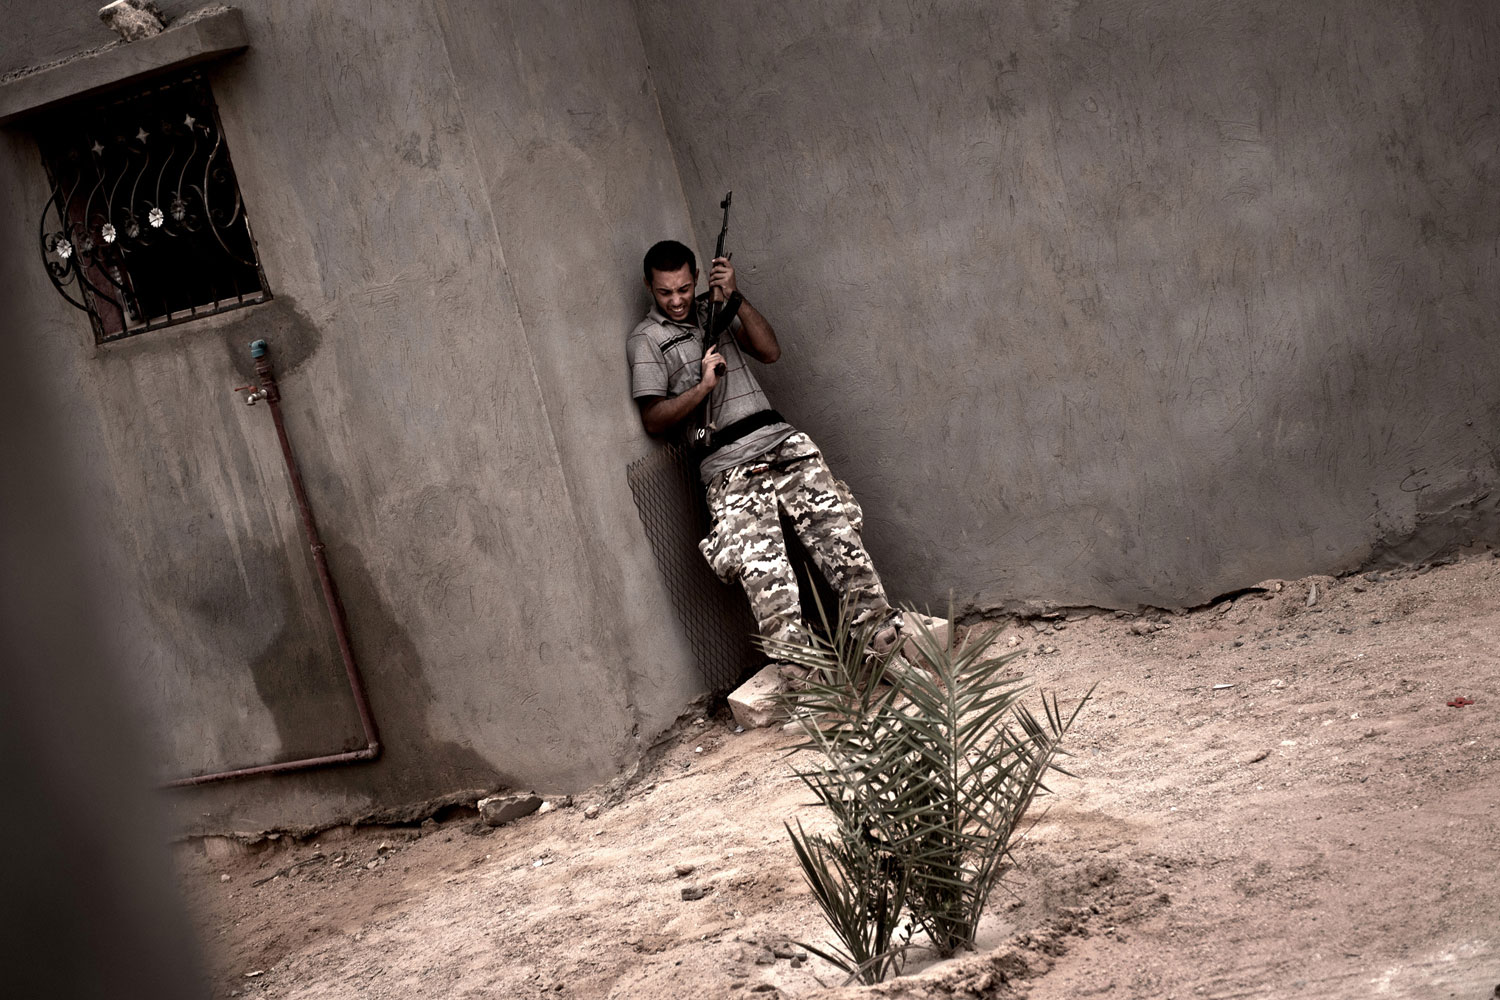 July 31, 2011. A rebel fighter takes cover during fighting in the village of Josh, at the foot of the Nafusa mountain range, in western Libya, as fighting continues between rebel forces and those loyal to the Libyan leader.  The Nafusa region has seen heavy fighting between rebels and forces loyal to leader Moammar Gaddafi since the insurgents launched a major offensive this month in a drive on the capital Tripoli.